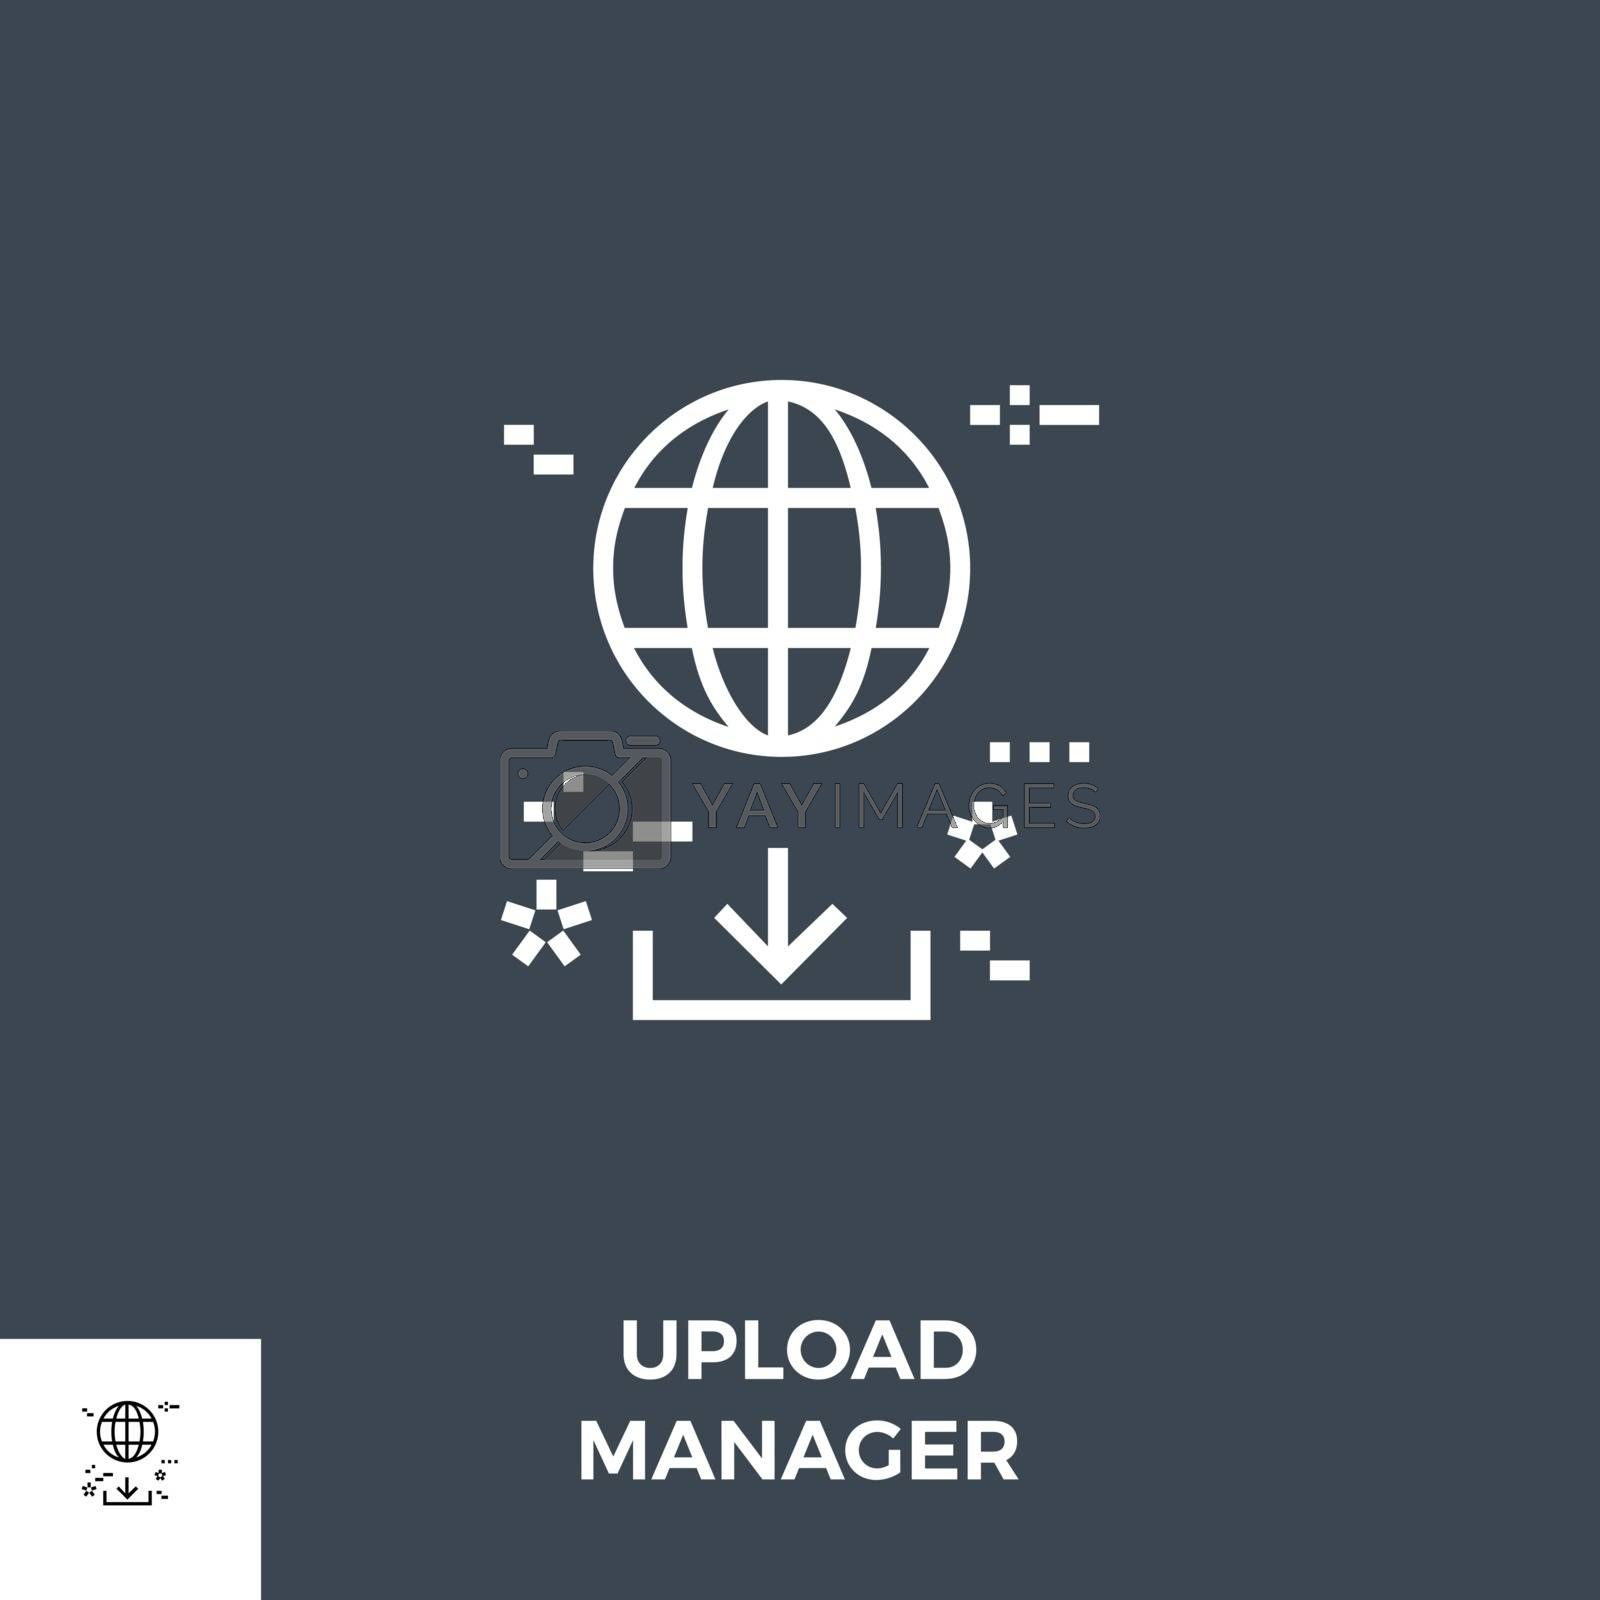 Upload Manager Line Icon by smoki